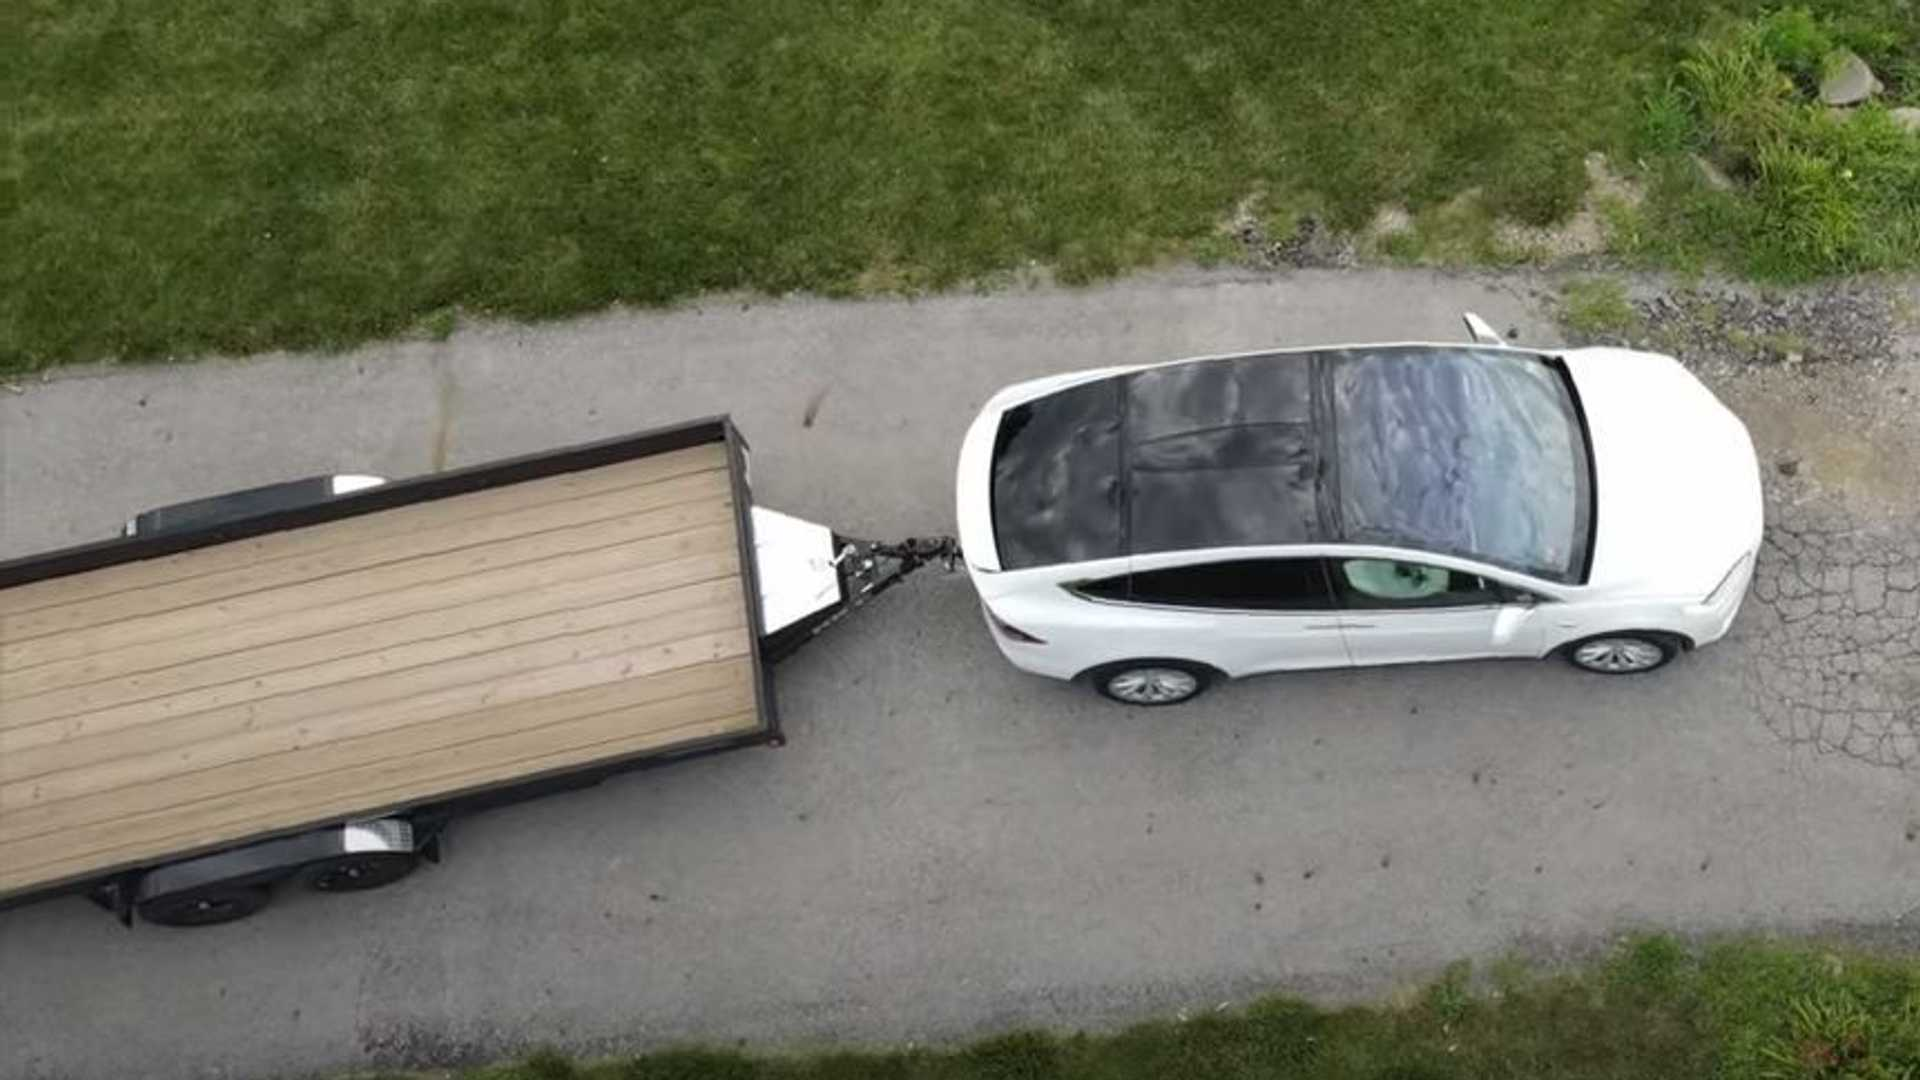 Tesla Model X Flatbed Trailer Towing How Does It Compare To A Camper